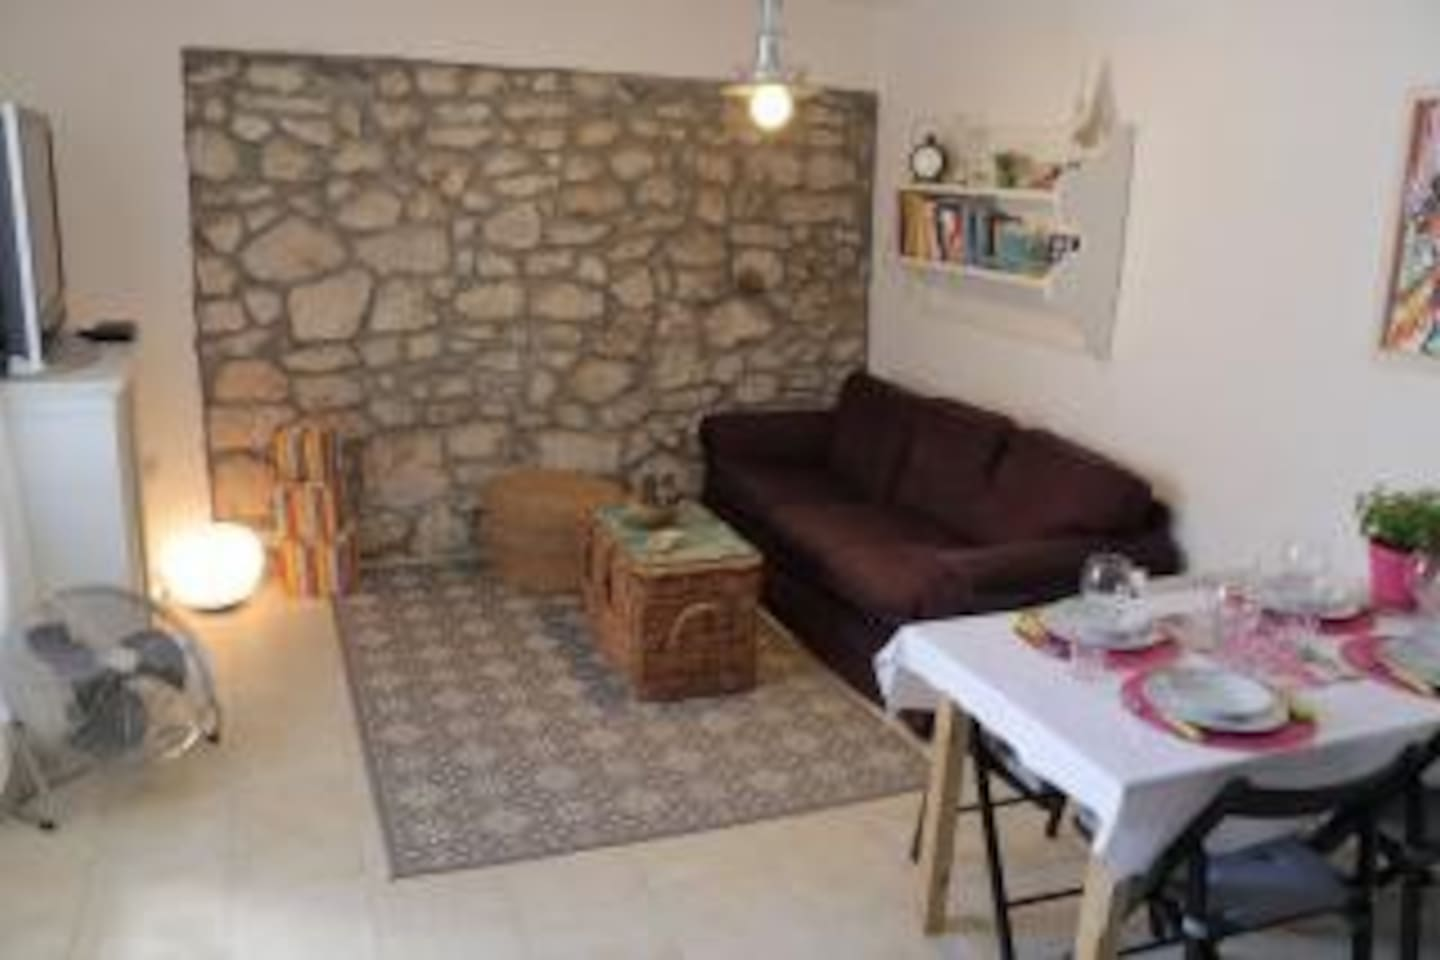 Happy Family House - Houses for Rent in Island Murter, Dalmatia, Croatia